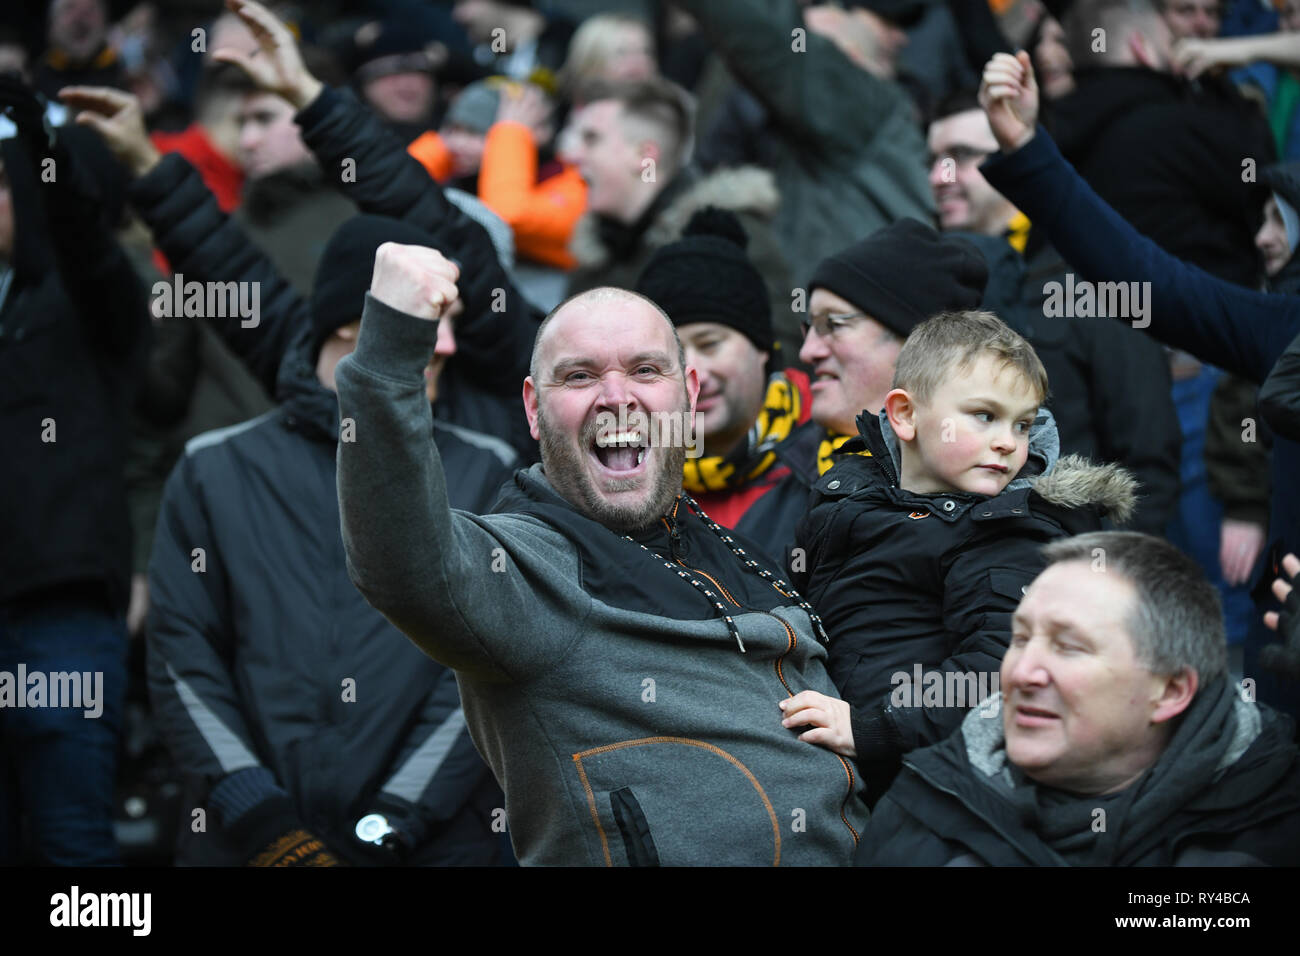 Football supporters father and son celebrating at football match - Stock Image